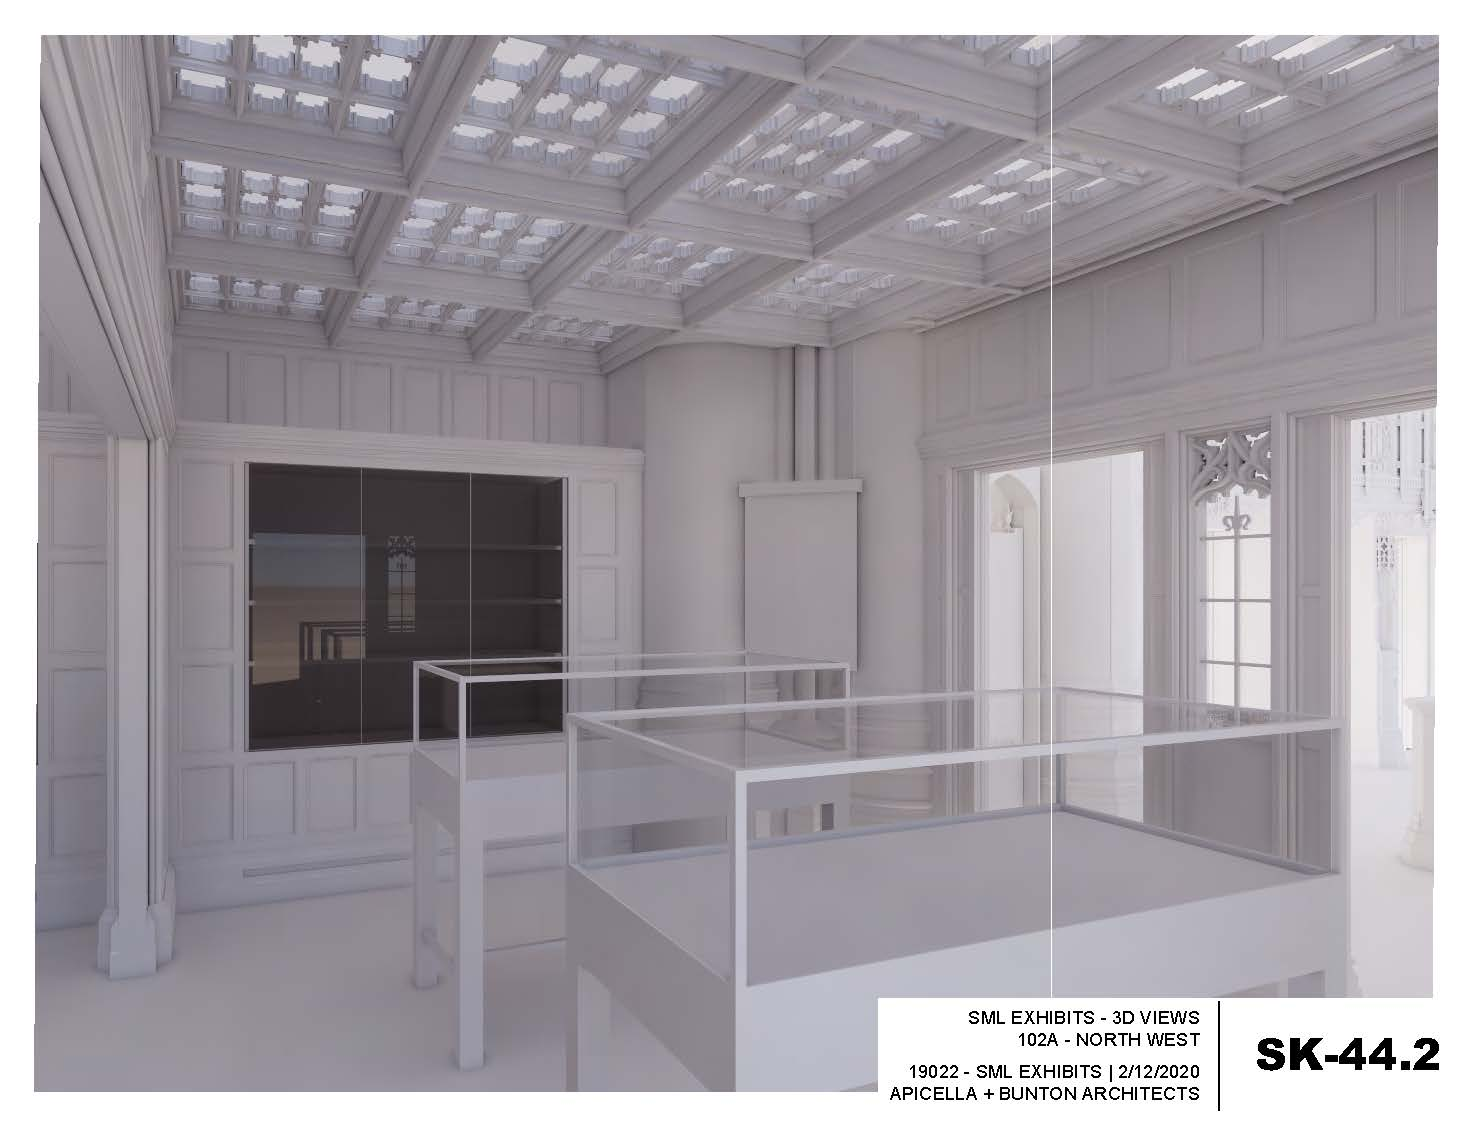 architect's rendering of gallery display cases